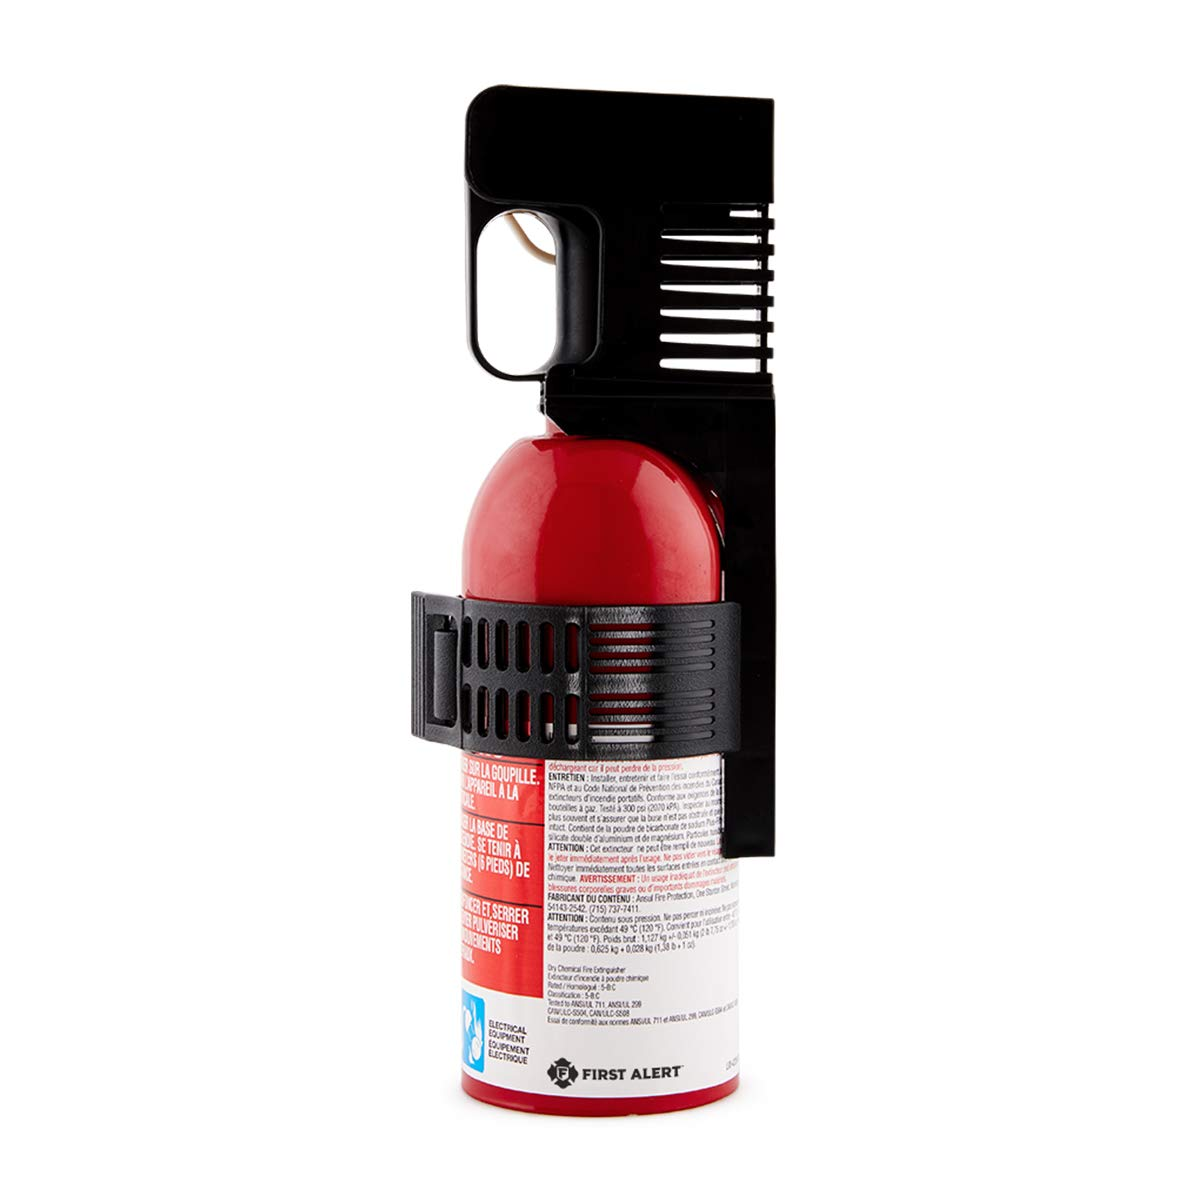 First Alert AUTO5 Auto Fire Extinguisher, Red